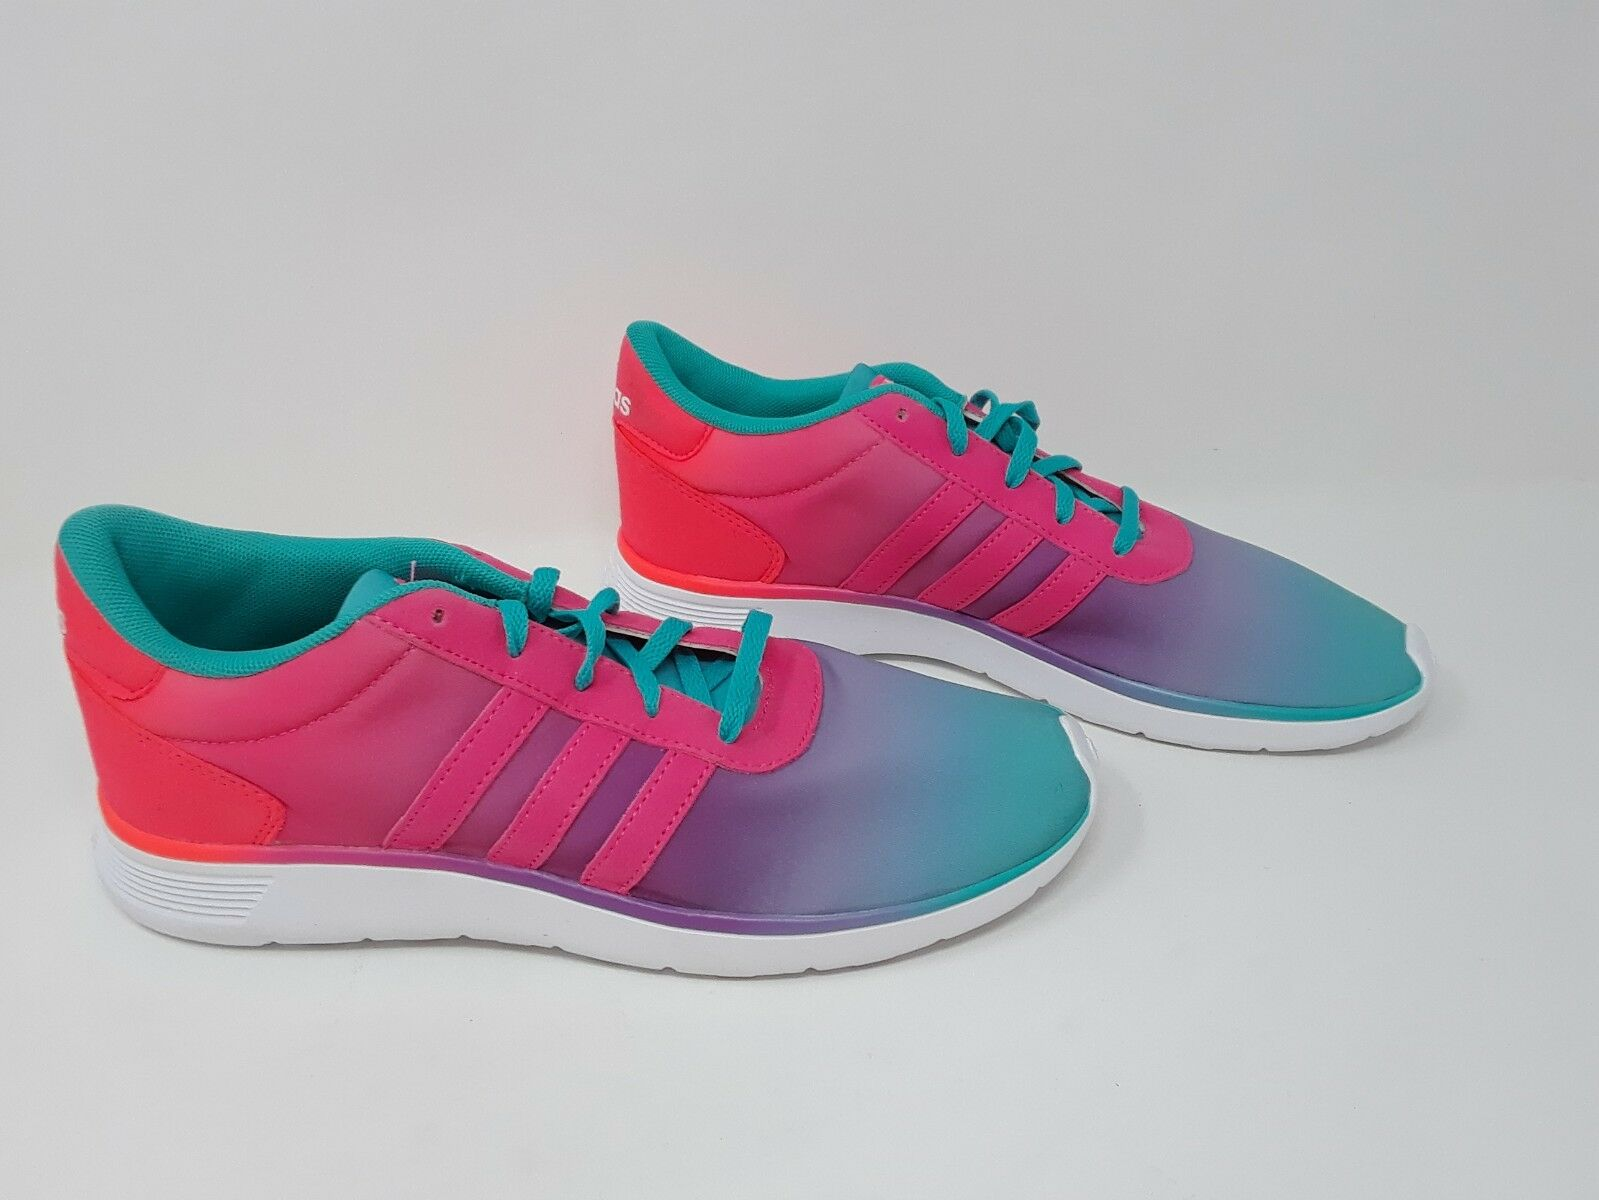 NEW  Womens Girls ADIDAS LITE RACER F99098 Multi color Sneakers  G34